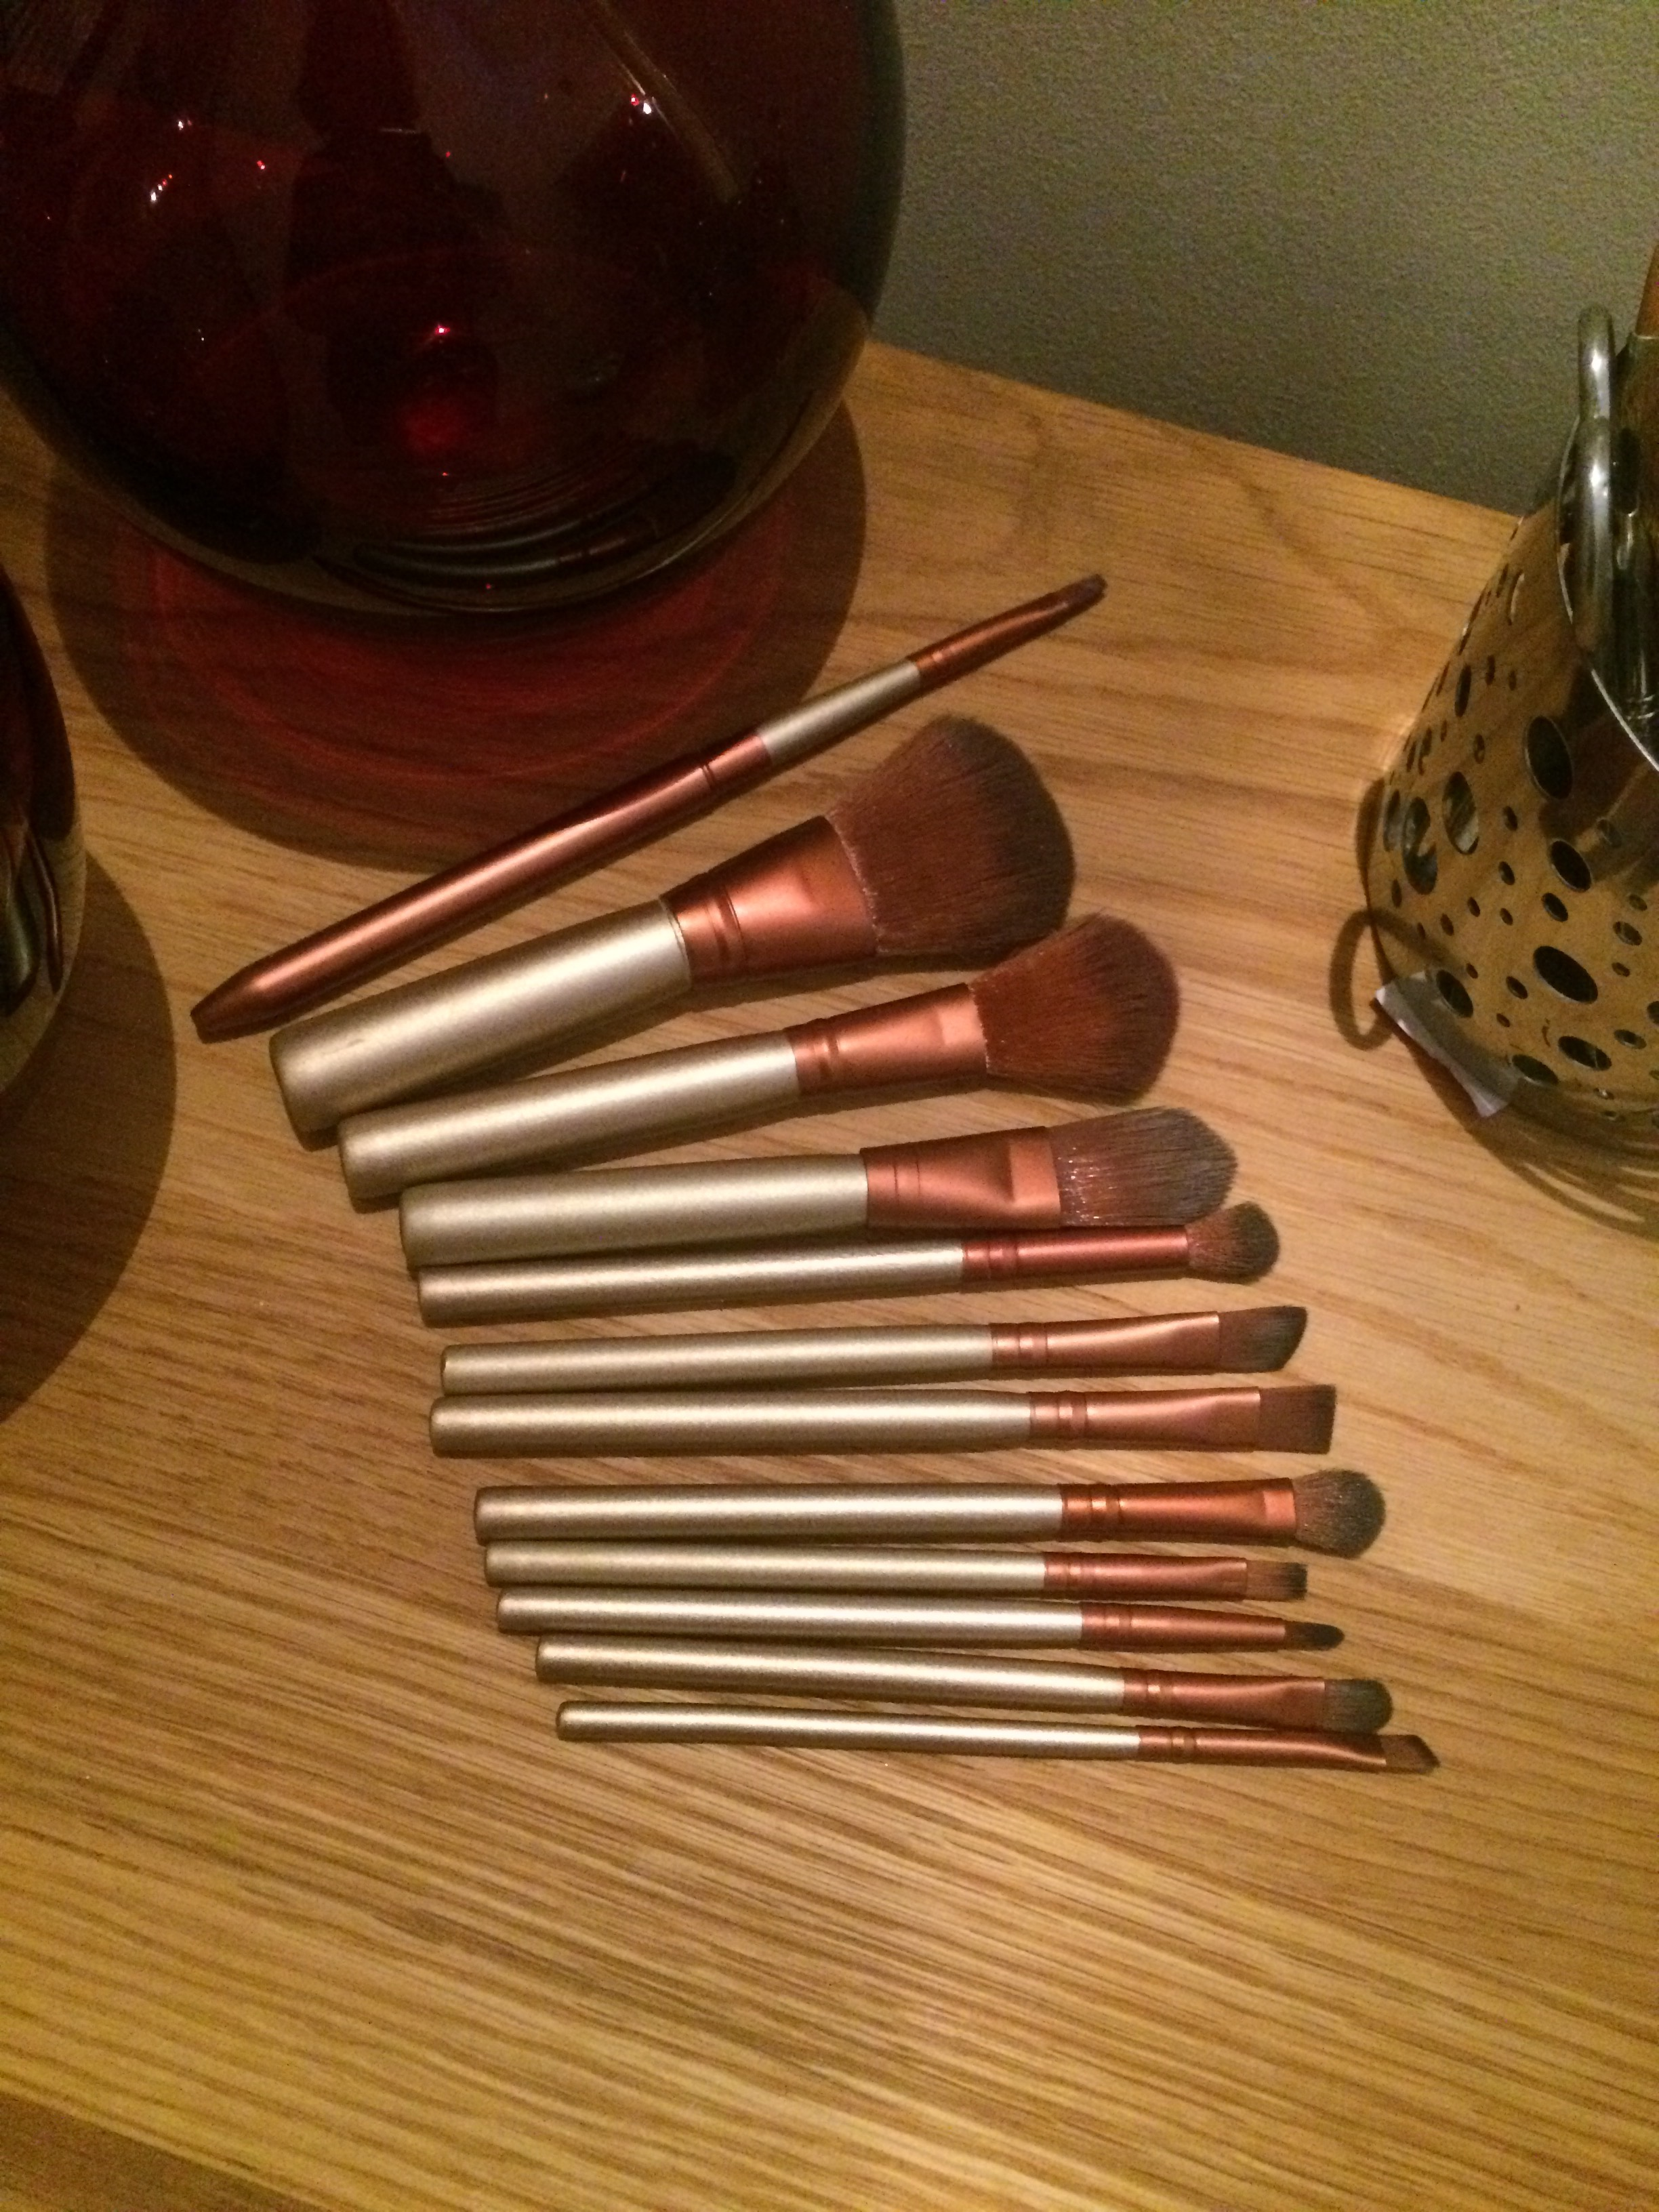 ebay-chinese-synthetic-makeup-brushes-review-photos